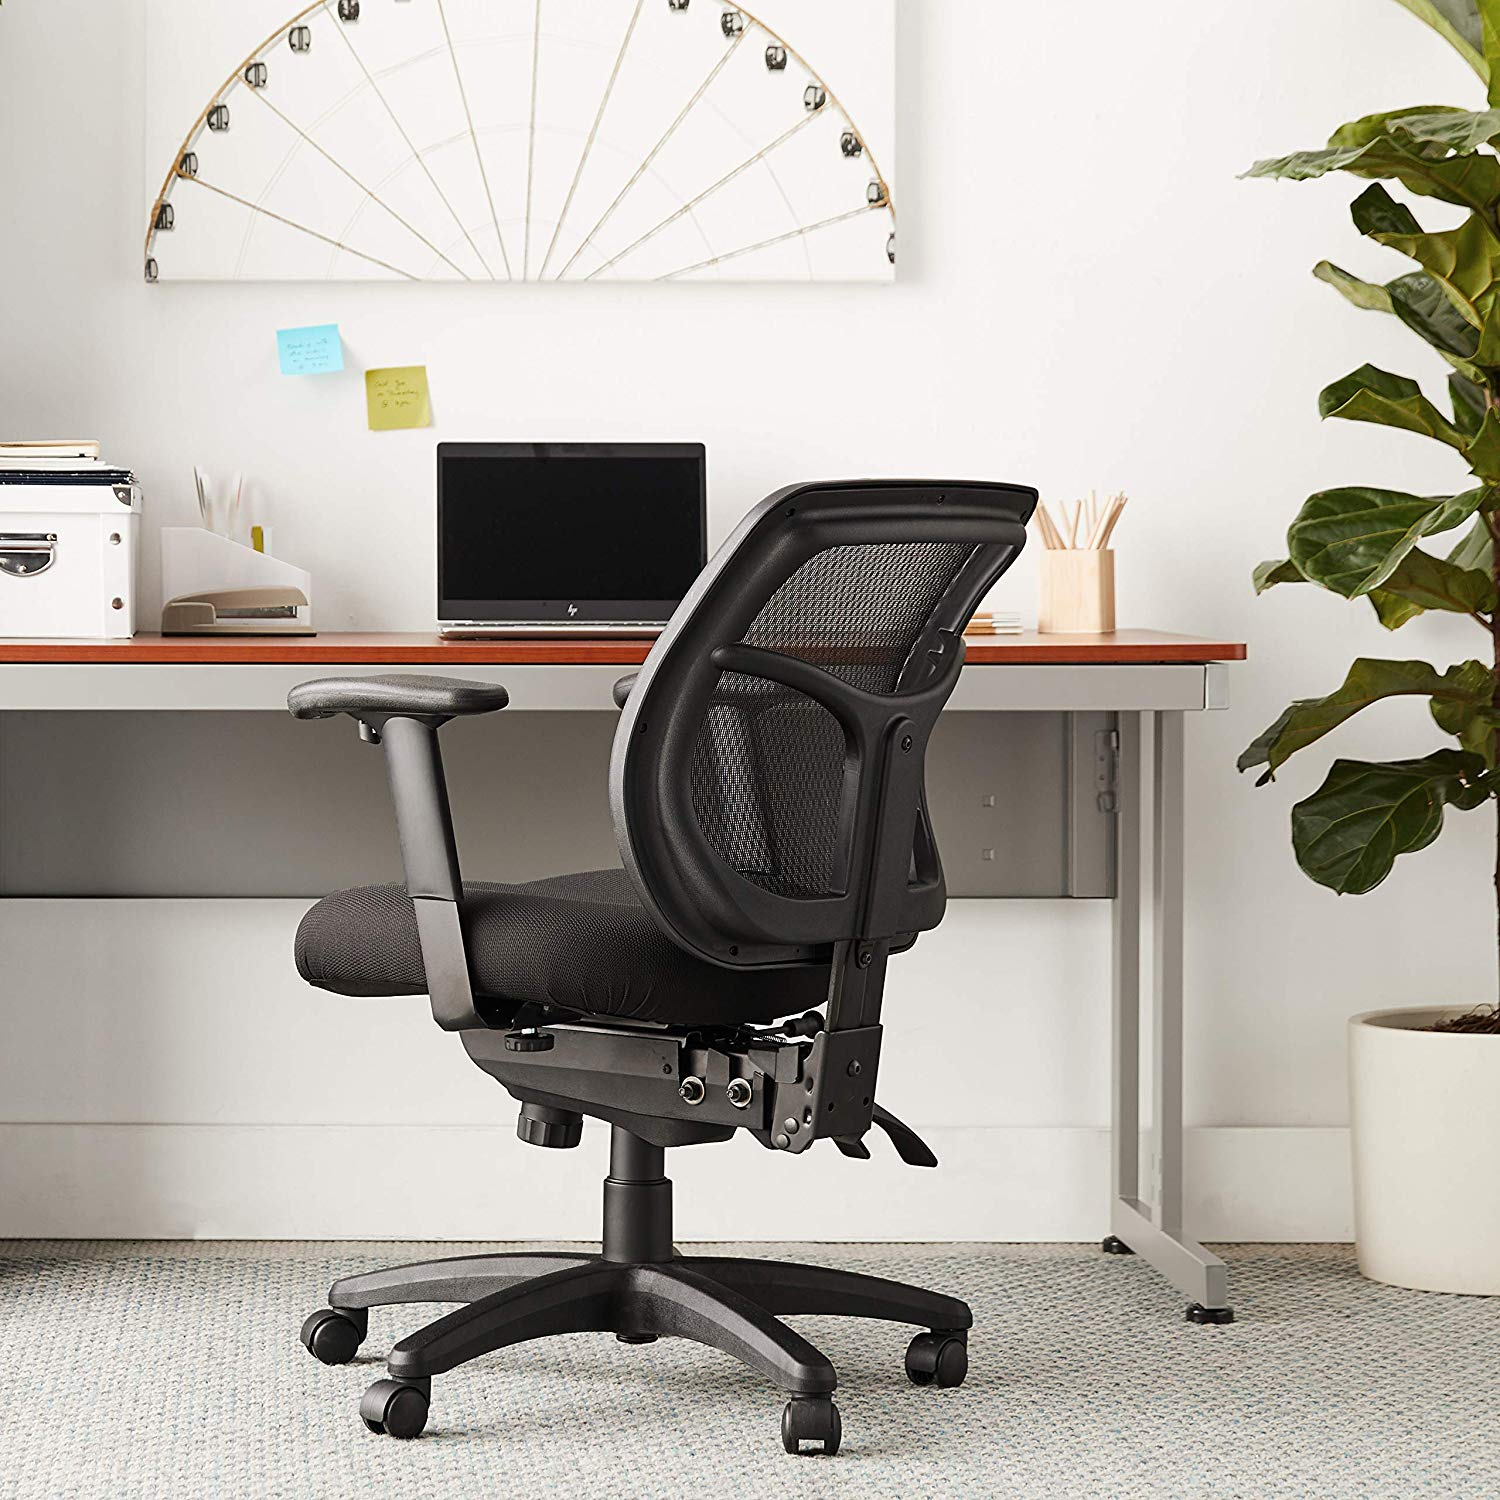 Eurotech Seating Apollo Multi function Swivel Chair with Seat Slider